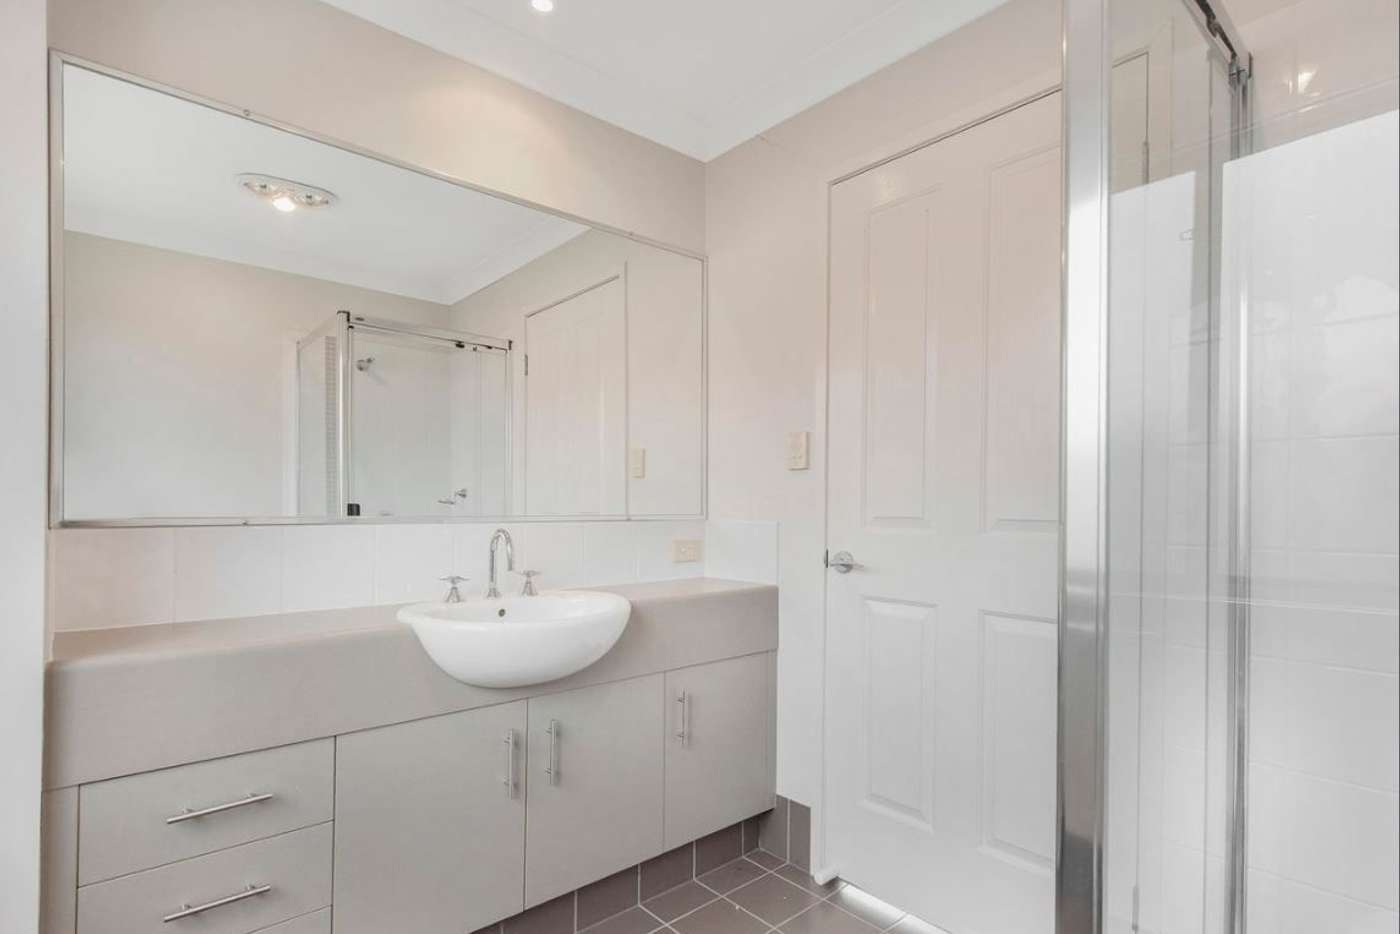 Seventh view of Homely house listing, 11 Lexey Crescent, Wakerley QLD 4154